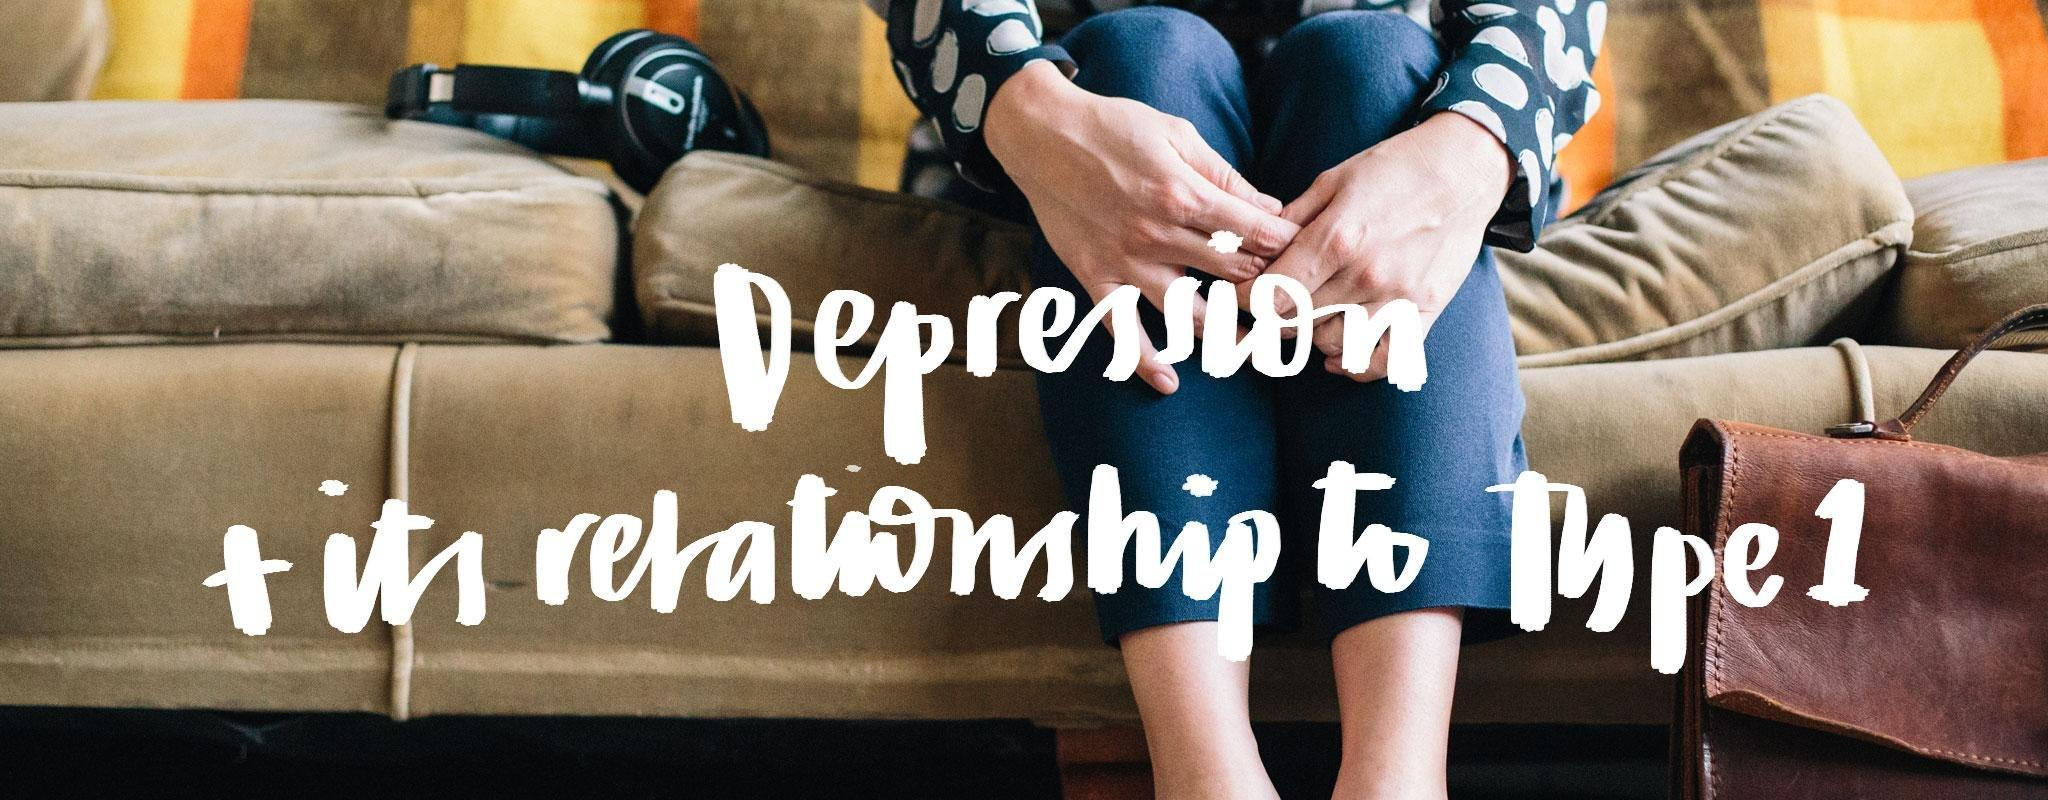 Depression And Its Relationship To Type 1